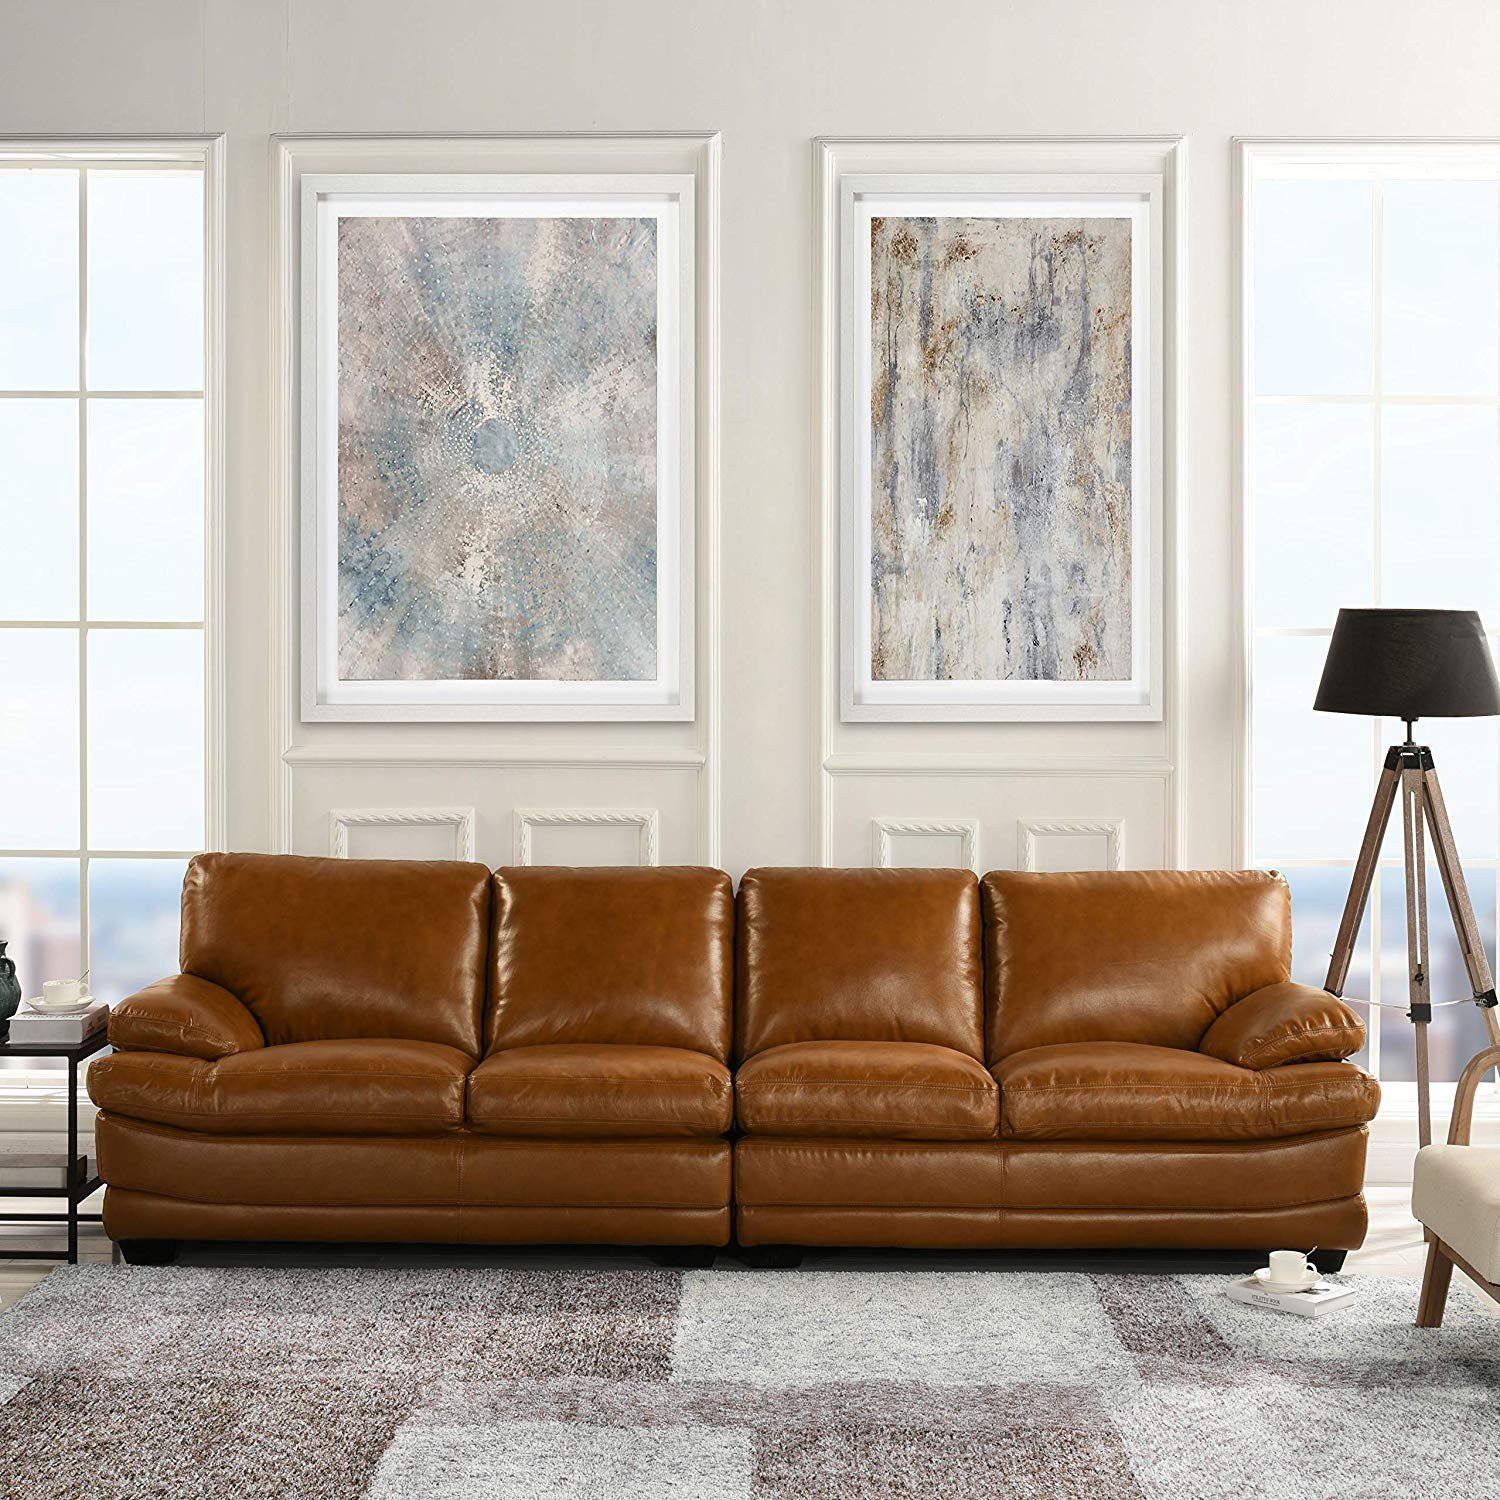 Details about Classic Large Leather Sofa, 111\